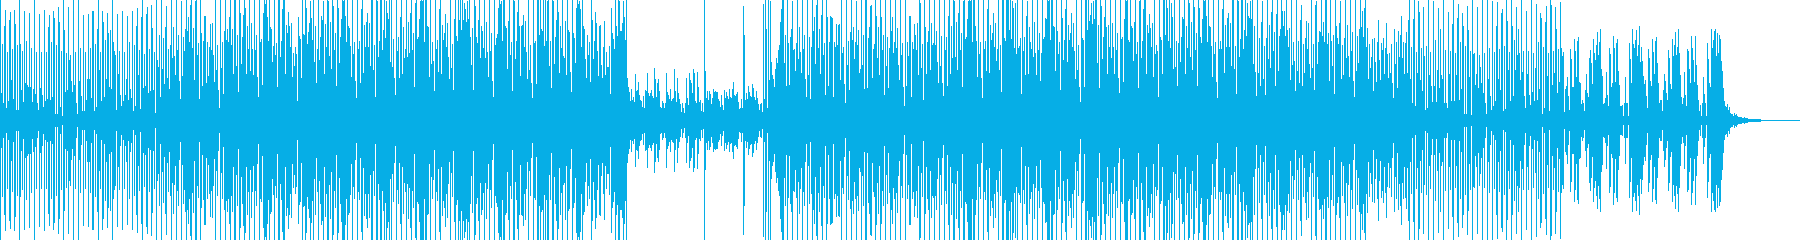 Techno Pop Music's reproduced waveform